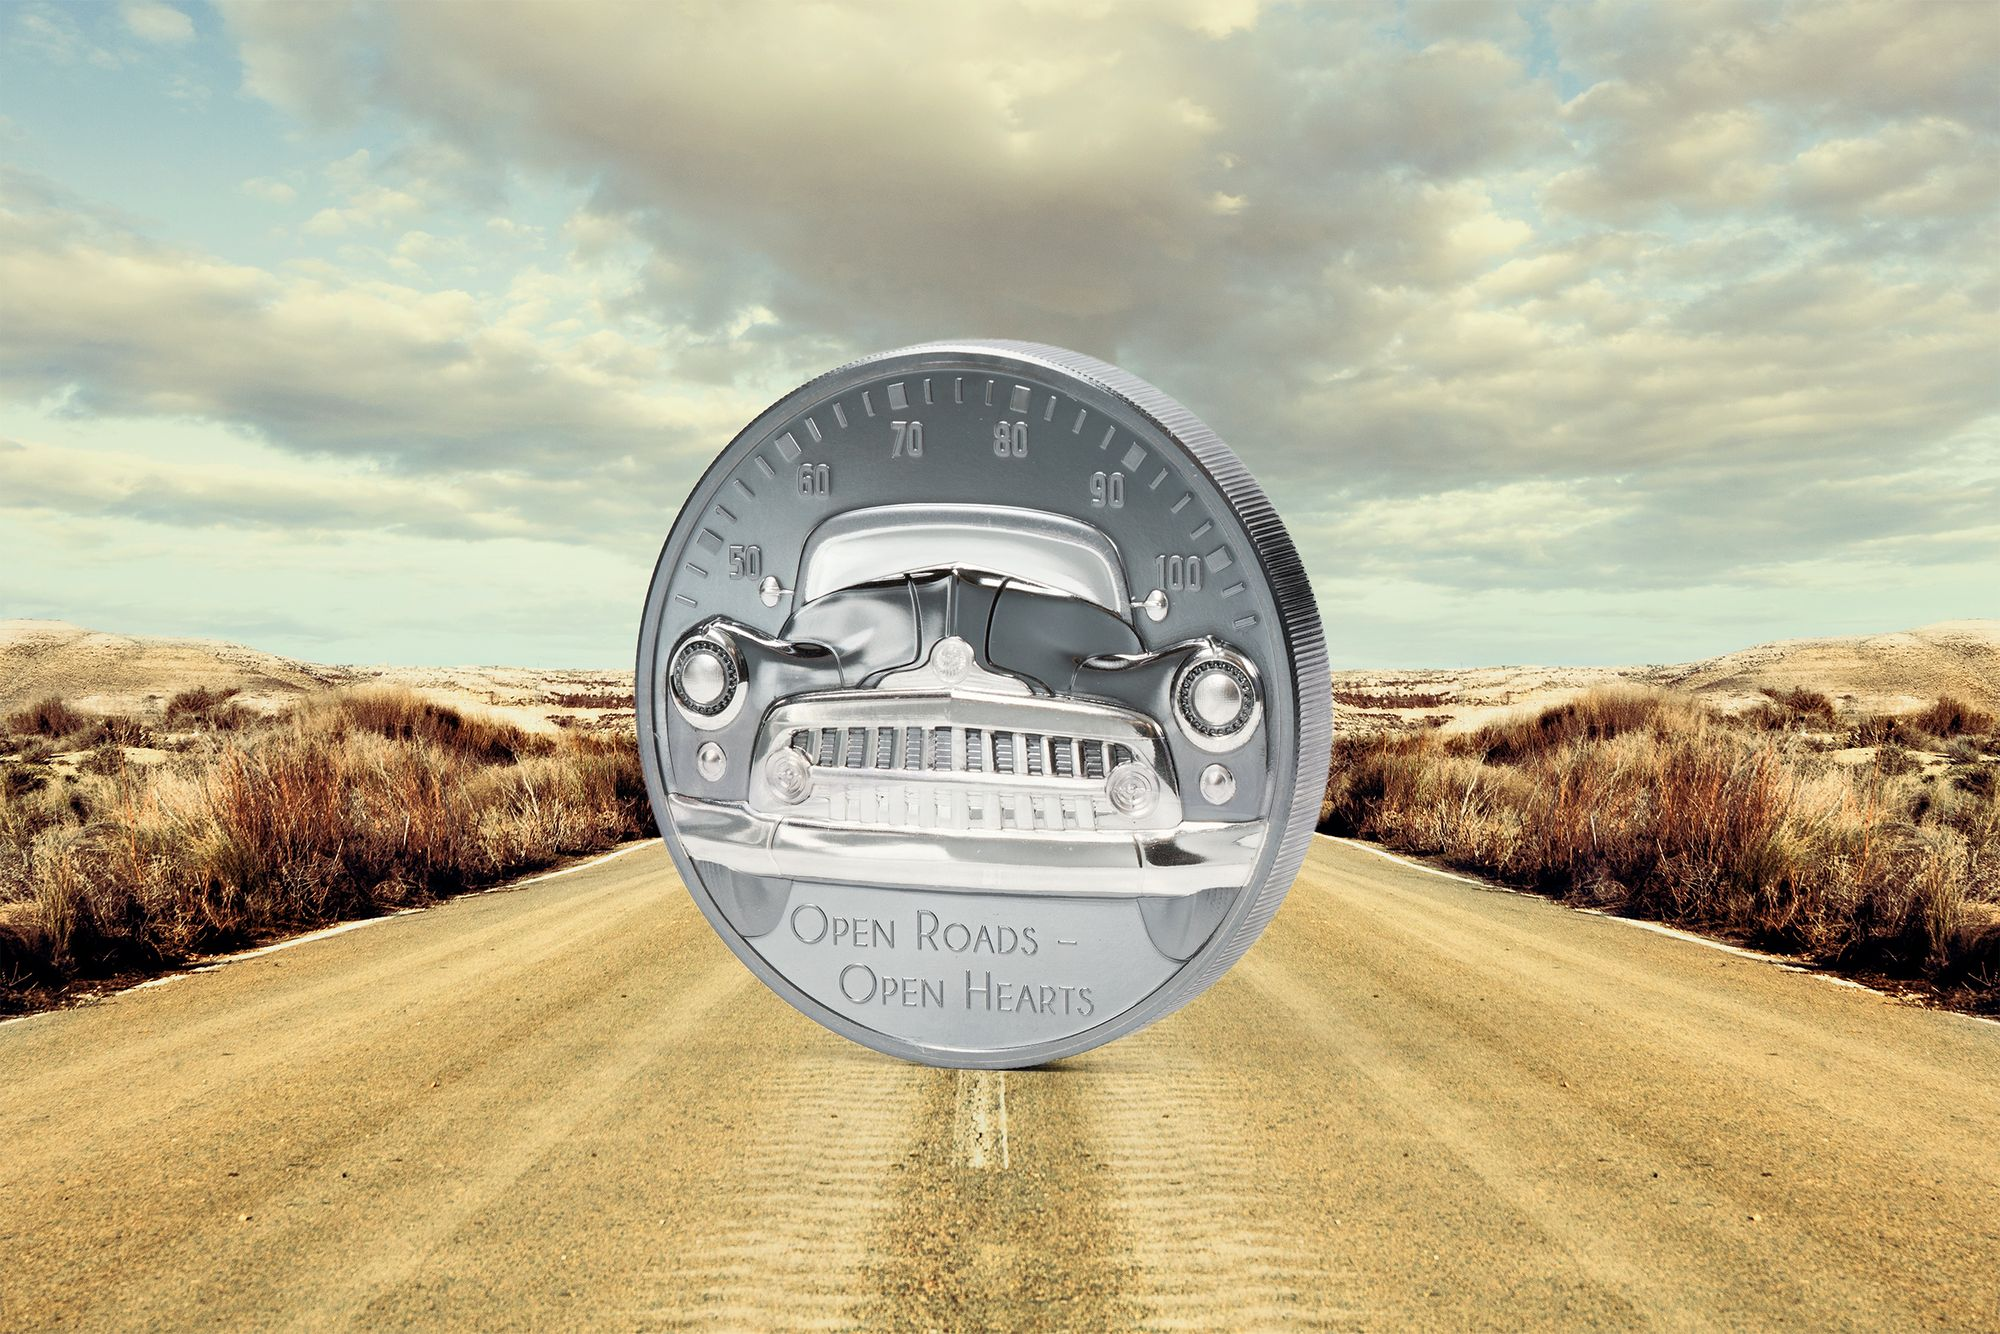 2021 The Journey Classic Car Open Roads 2oz Silver Coin